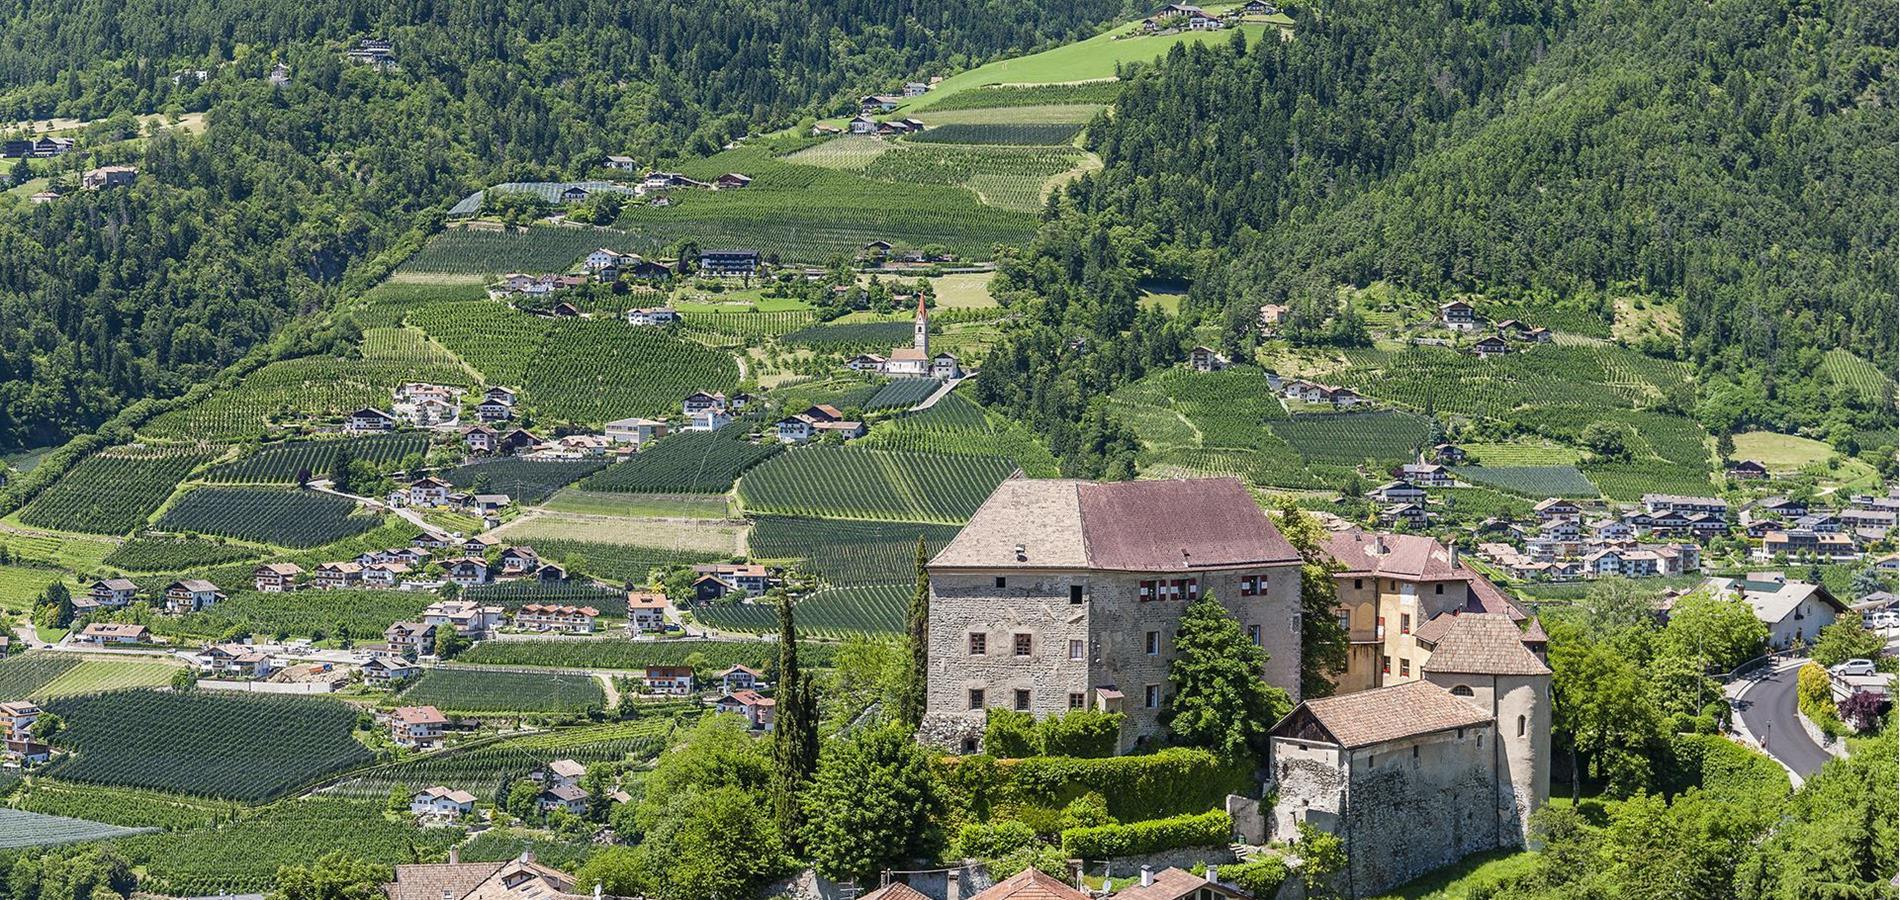 Tourist Attractions in Historical Scena in South Tyrol